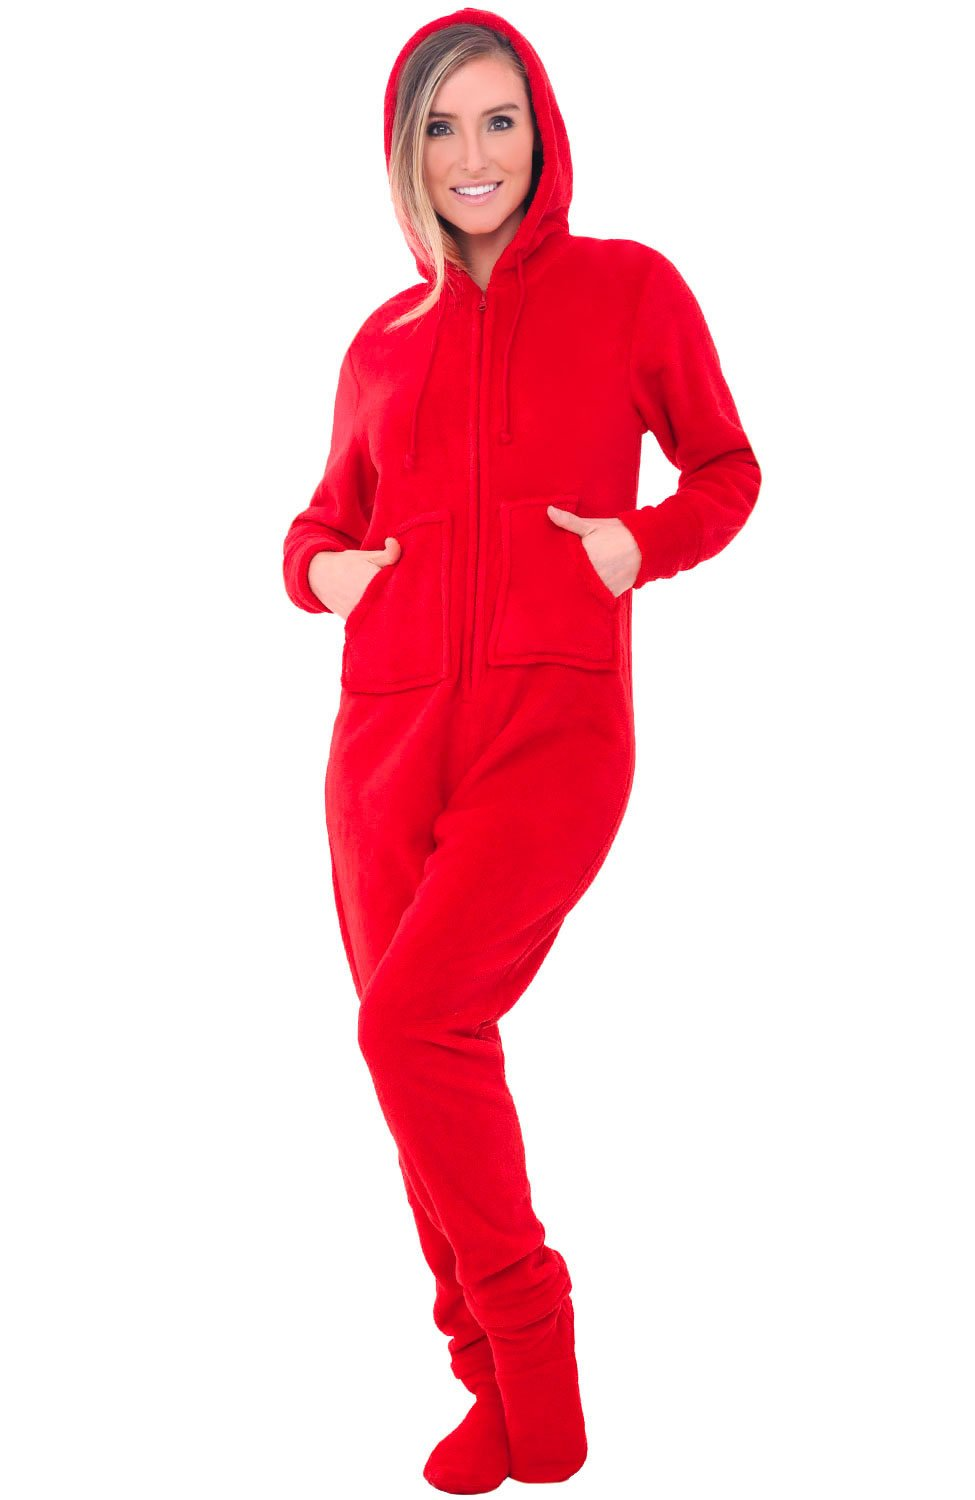 Alexander Del Rossa Womens Fleece Onesie, Hooded Footed Jumpsuit Pajamas, Small Red (A0322REDSM)